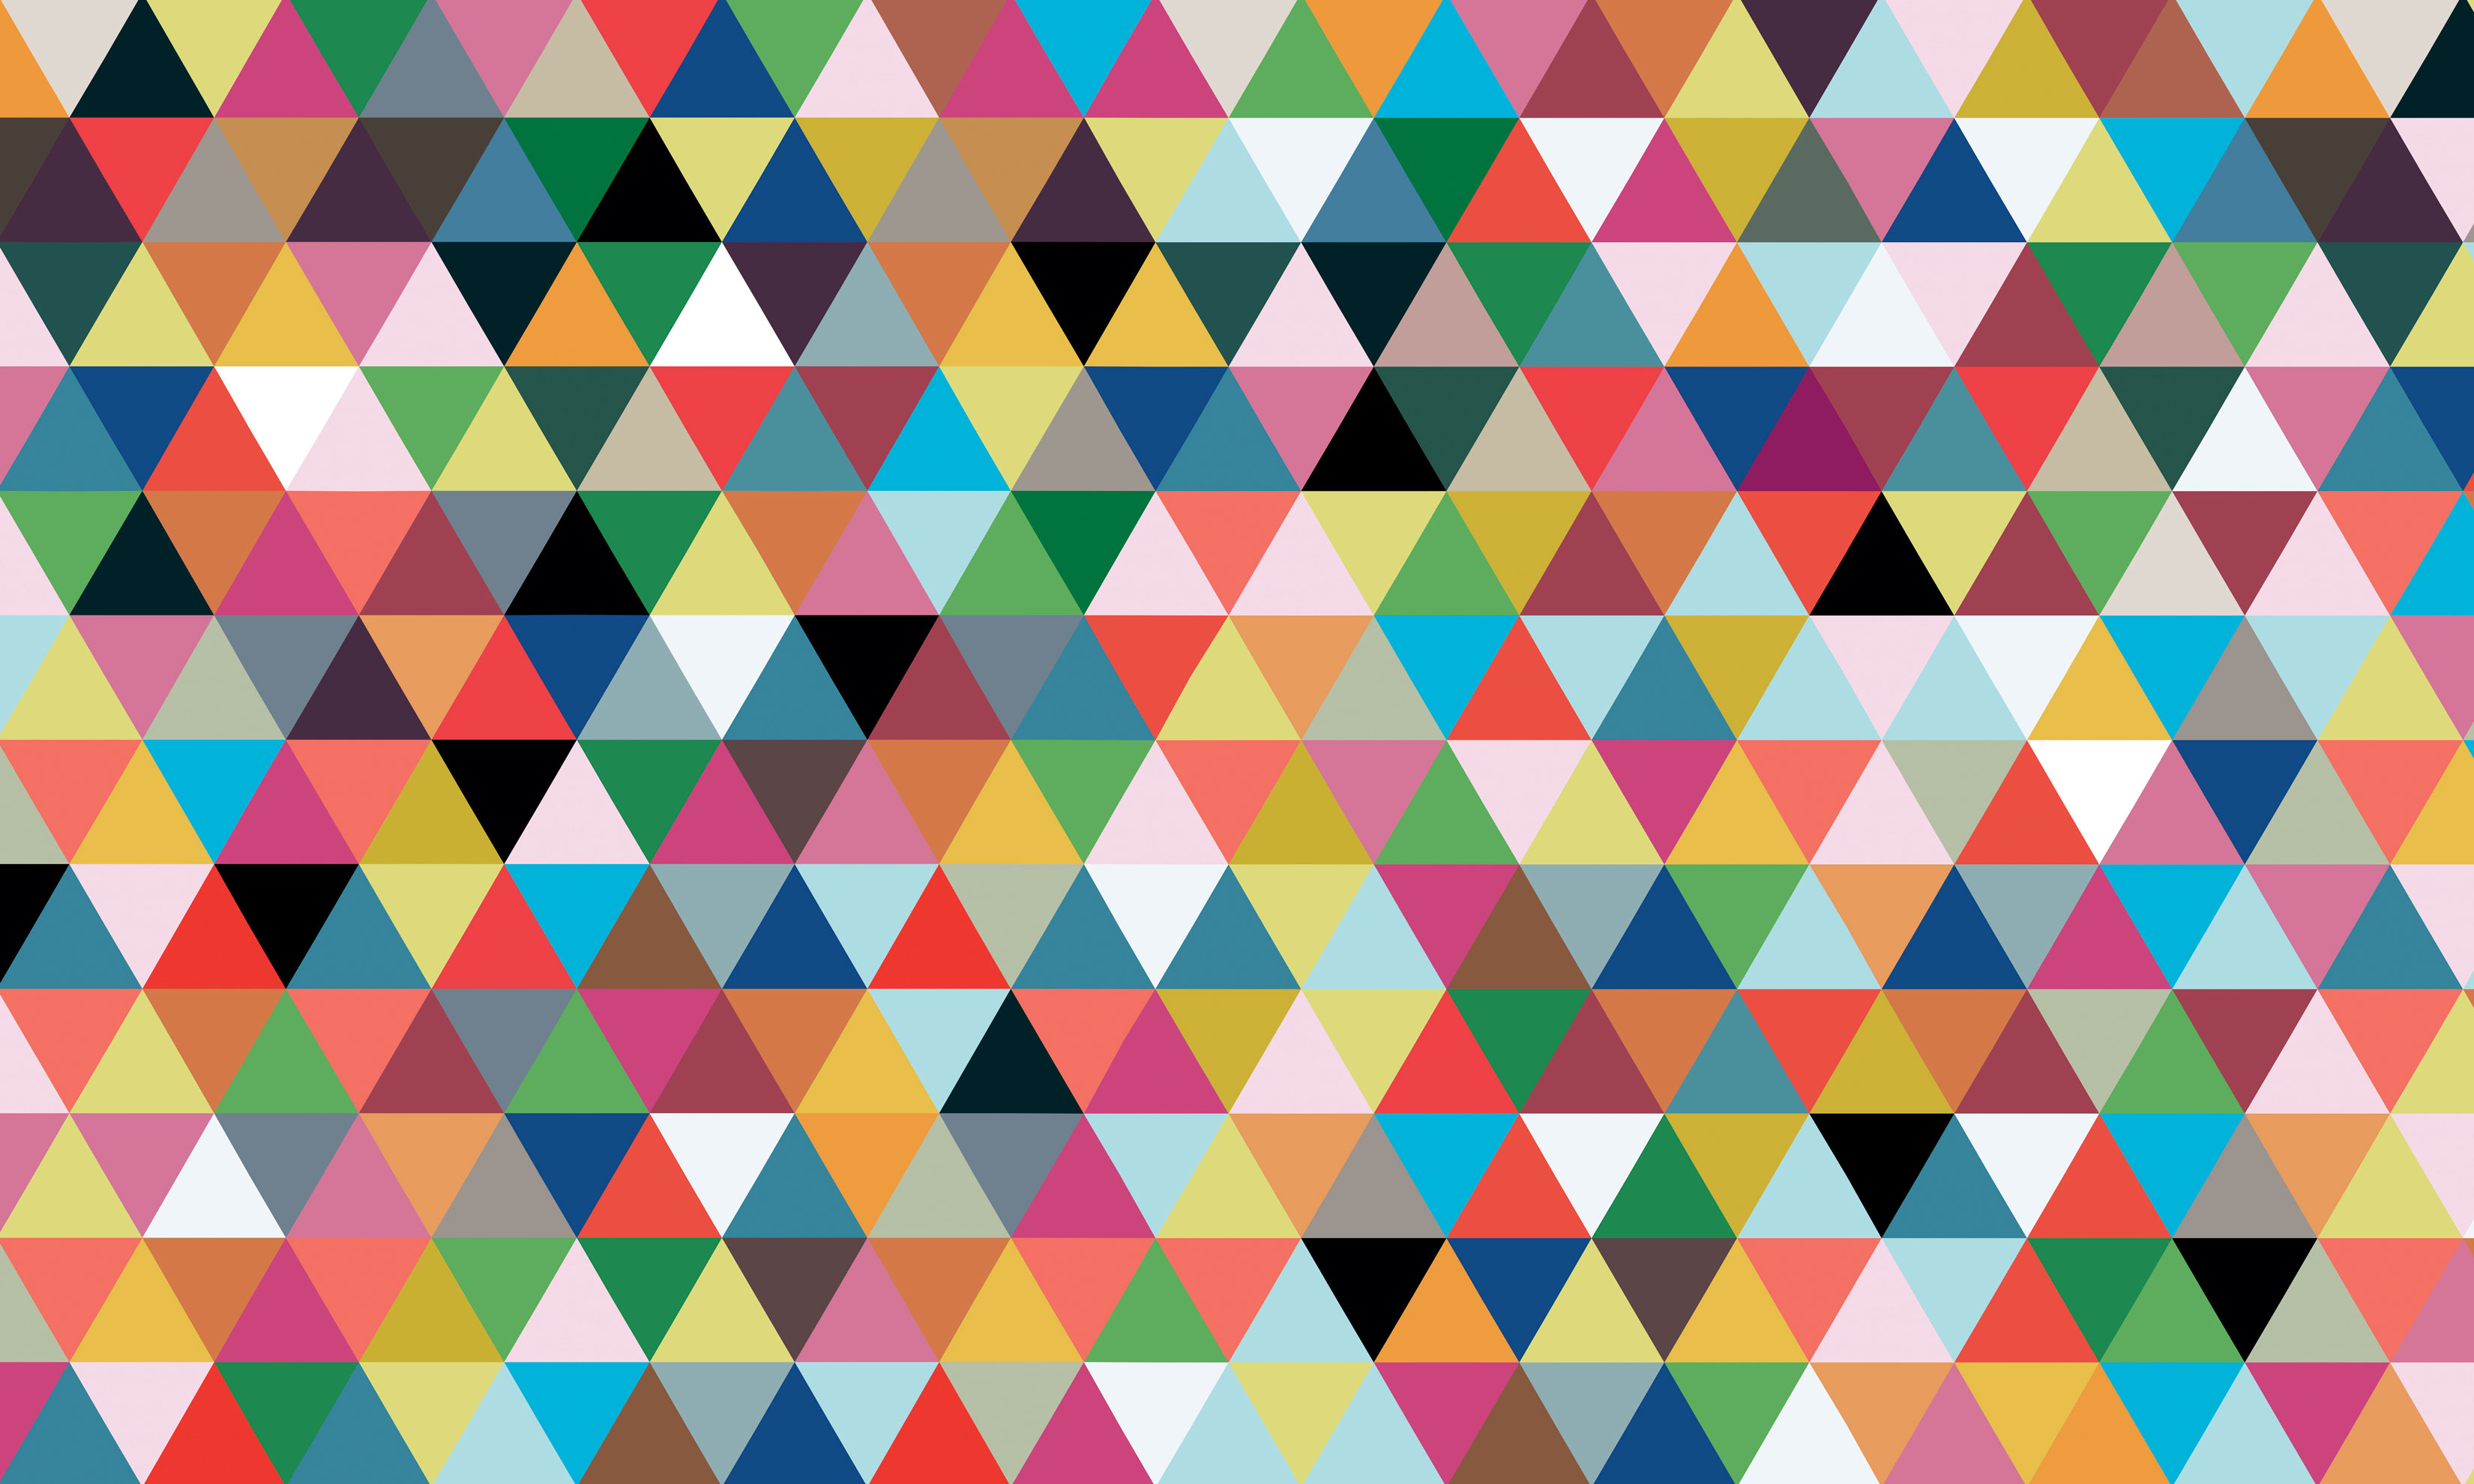 Triangle geometric pattern wallpaper Geometric patterns